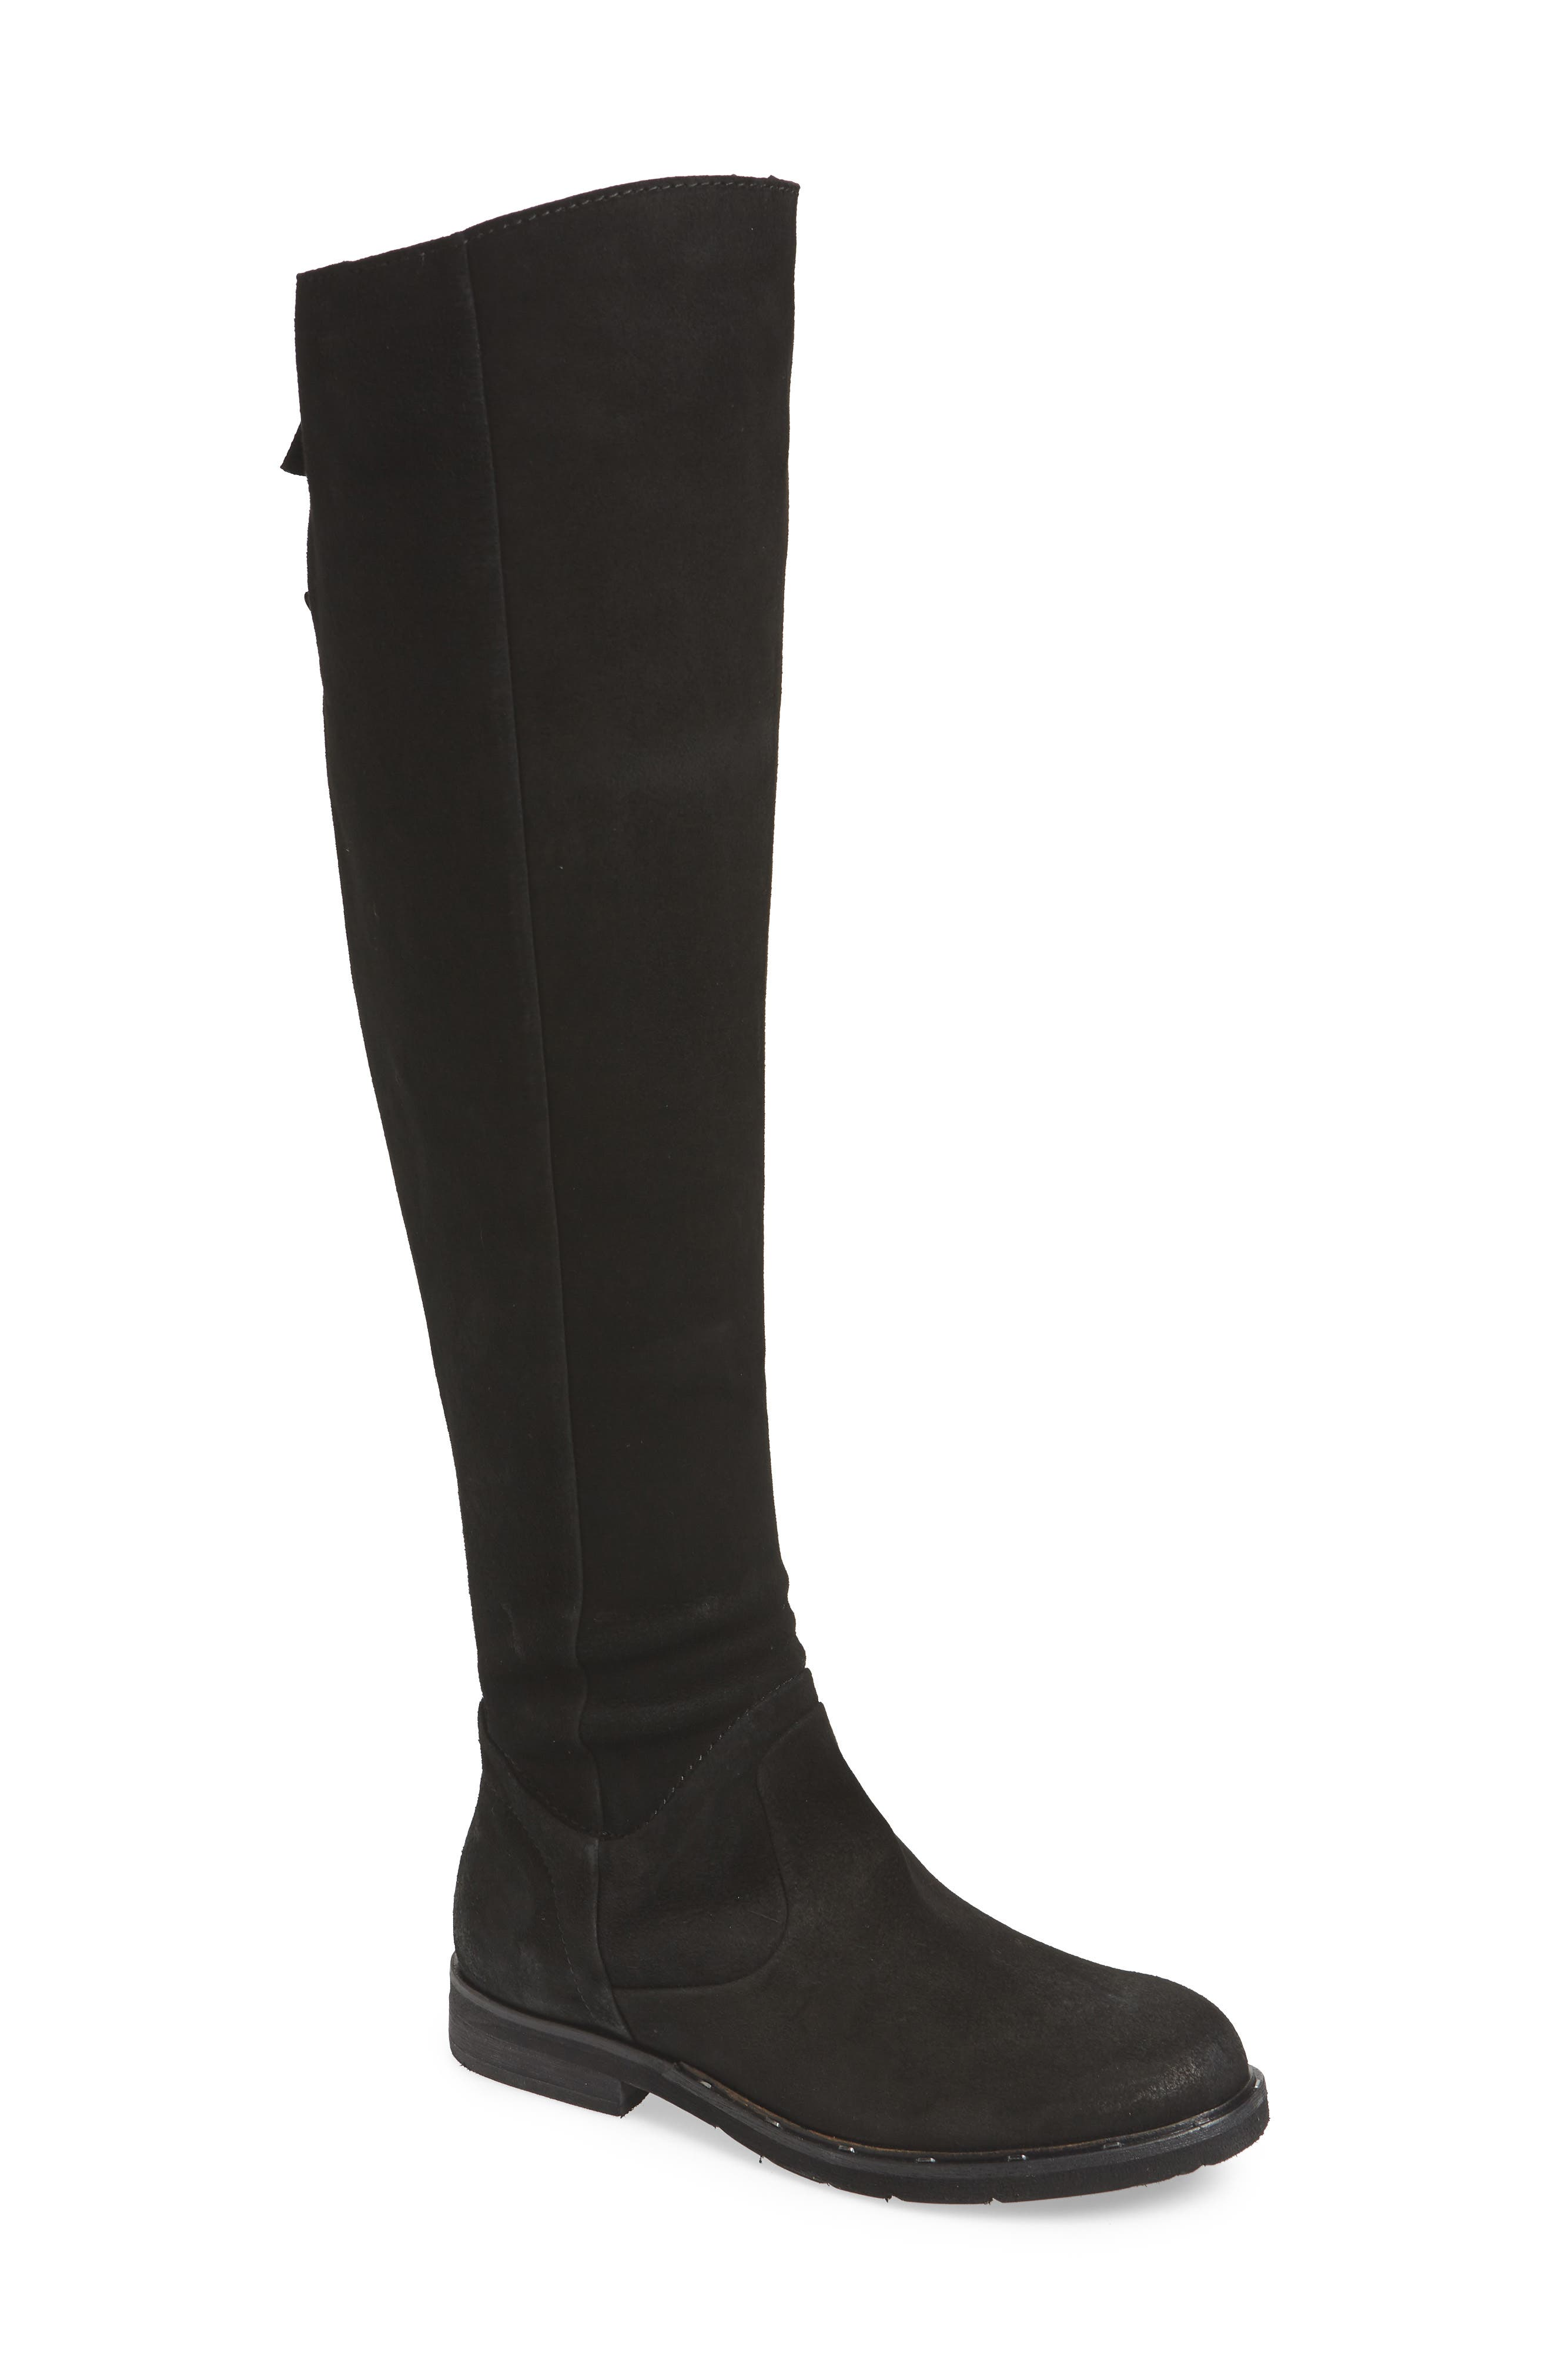 Otbt Steerage Over The Knee Boot- Black